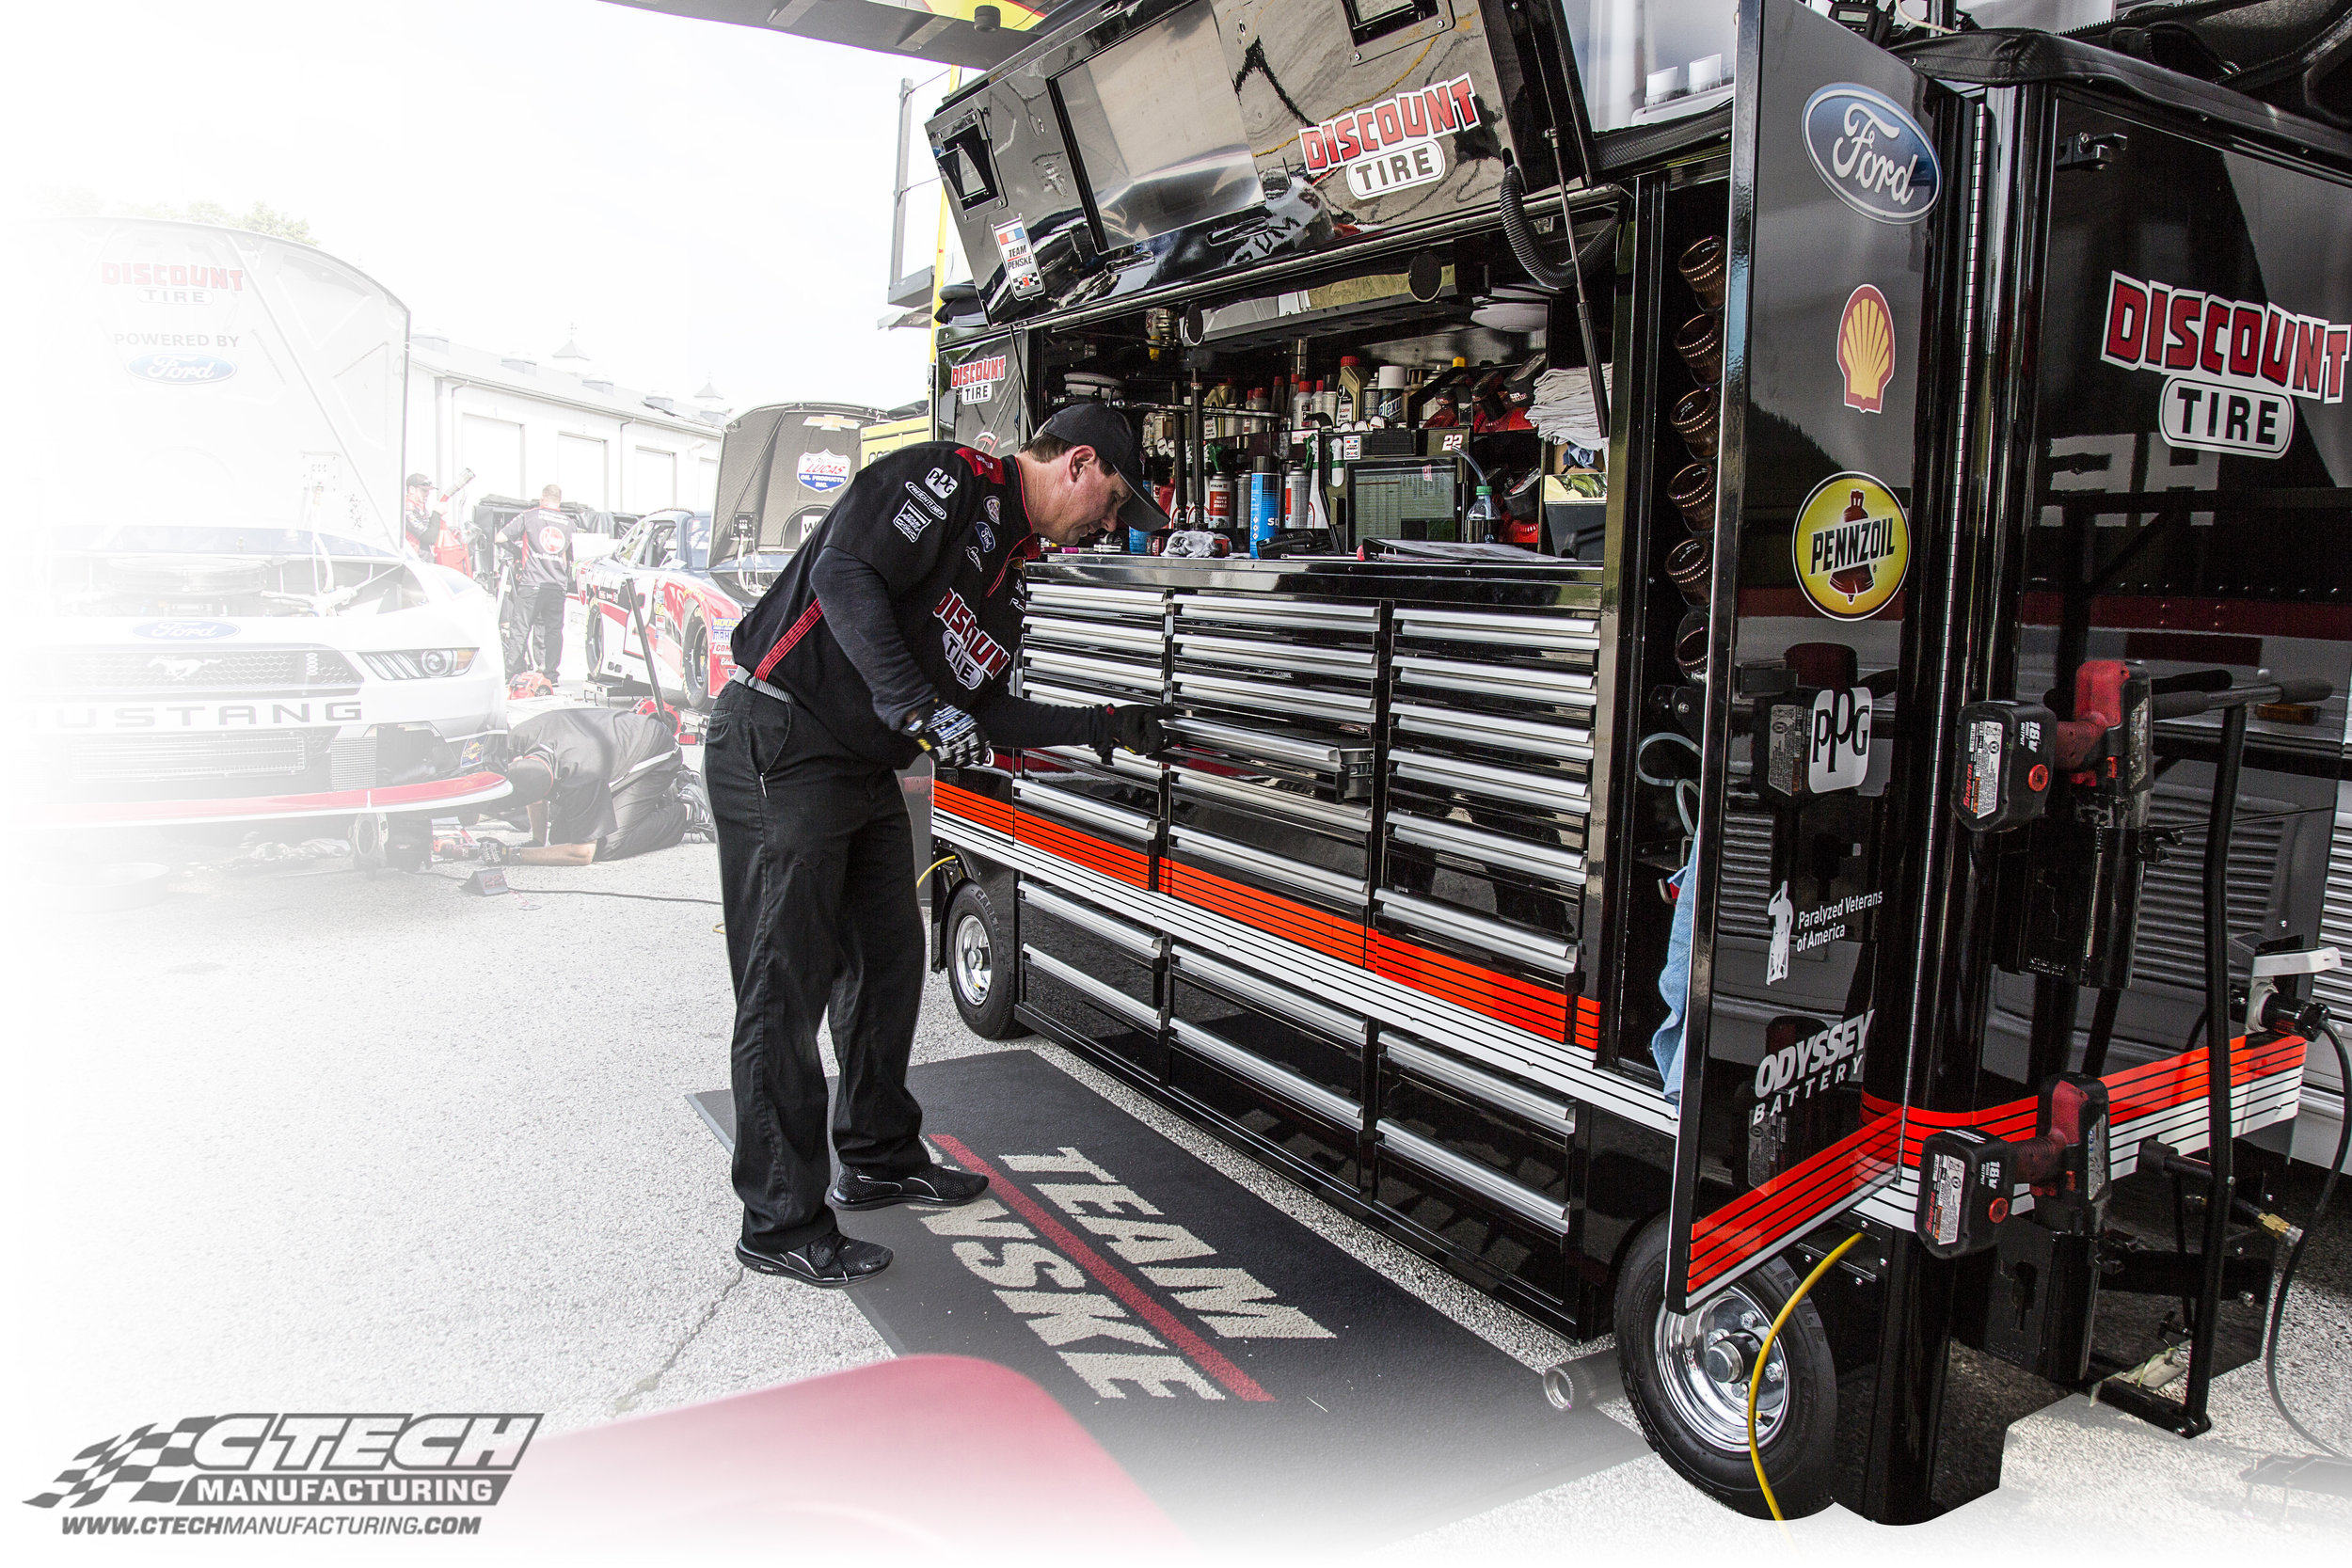 NASCAR's top teams trust CTECH to provide them with mobile tool/equipment storage that mirrors a fully equipped garage. Our Garage Box boasts a massive amount of drawer/cabinet storage, along with a spacious worktop and plenty of power distribution options.